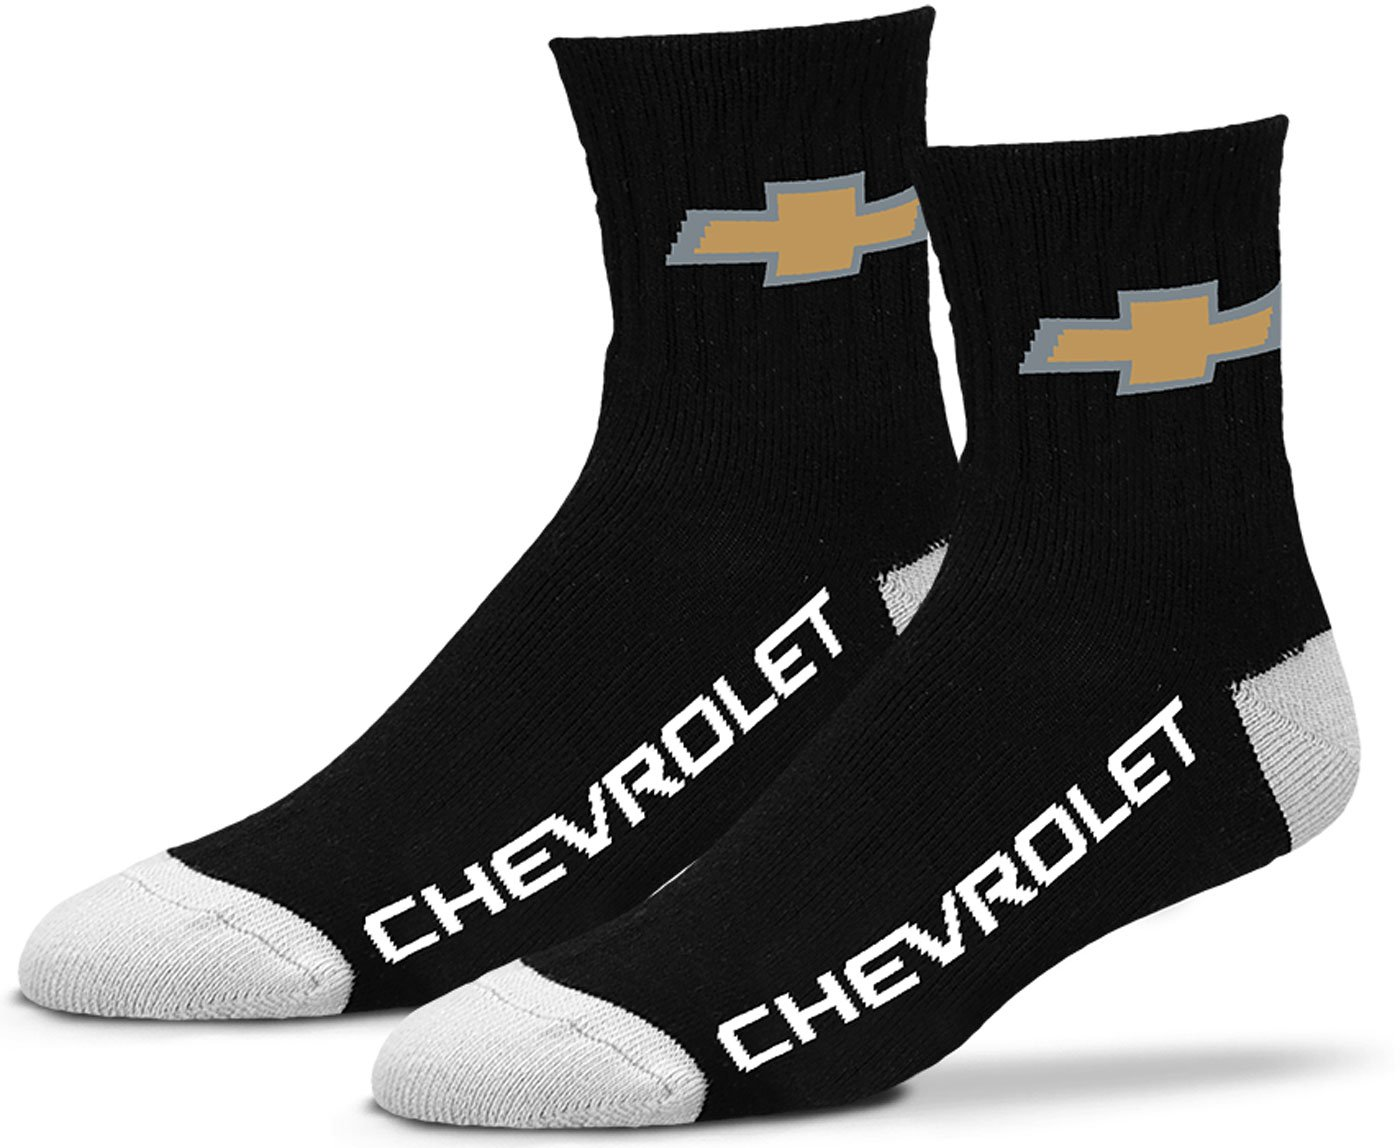 Gregs Automotive Chevrolet Chevy Bowtie Quarter Socks - Bundle - 2 Items: One Pair Socks One Racing Decal Greg' s Automotive